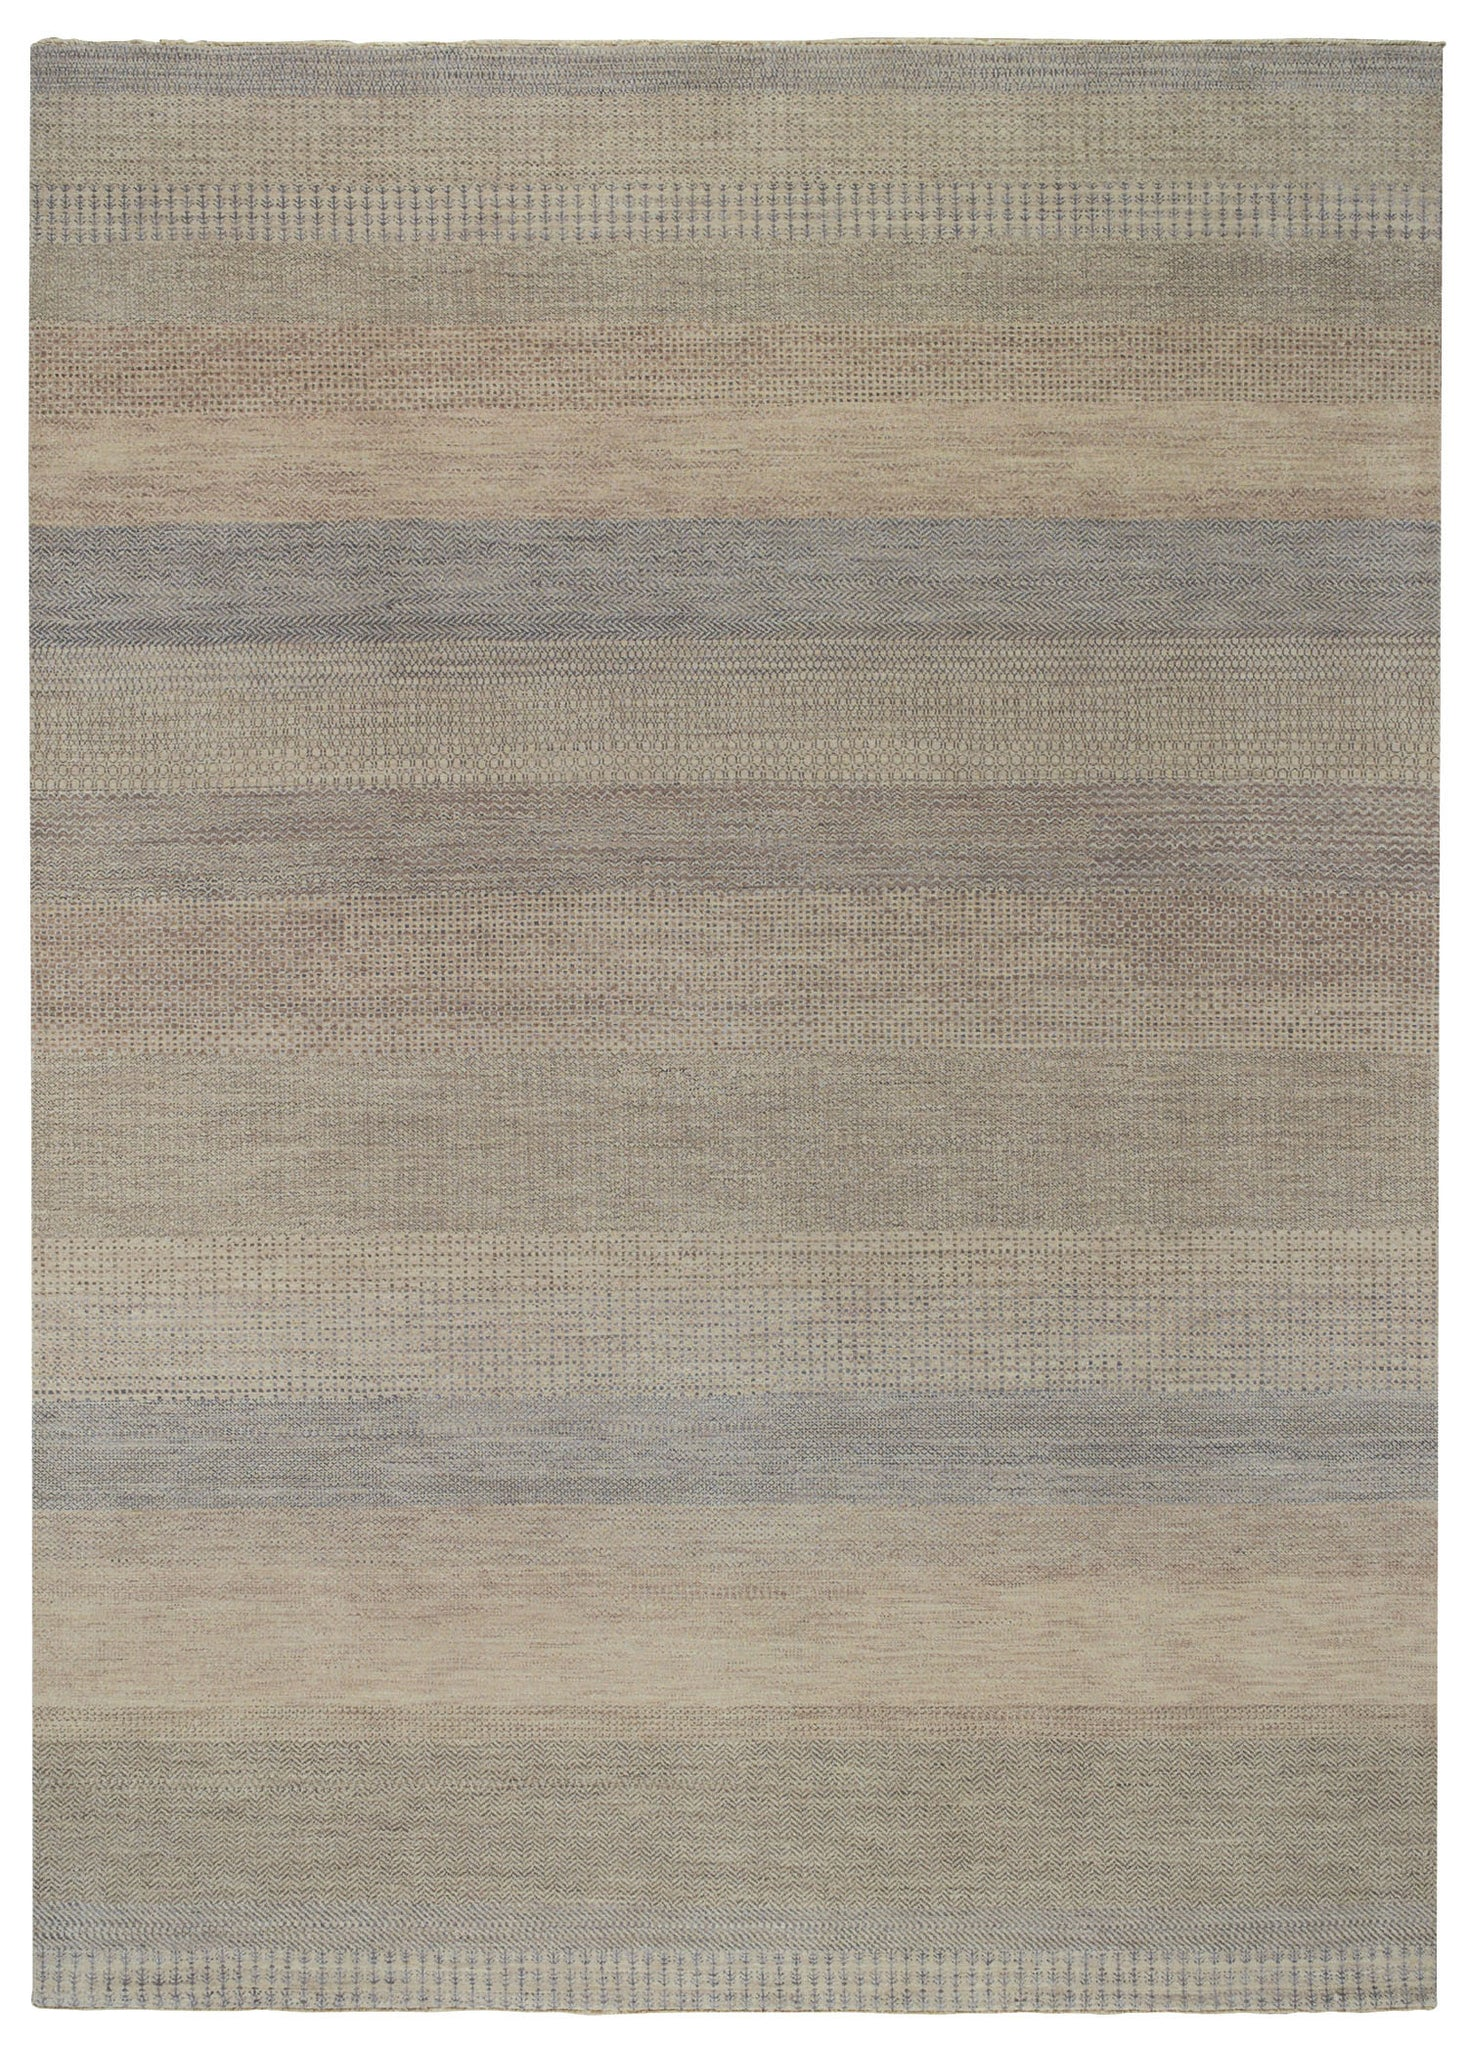 Capel Alameda 1085 Light Beige 675 Area Rug main image